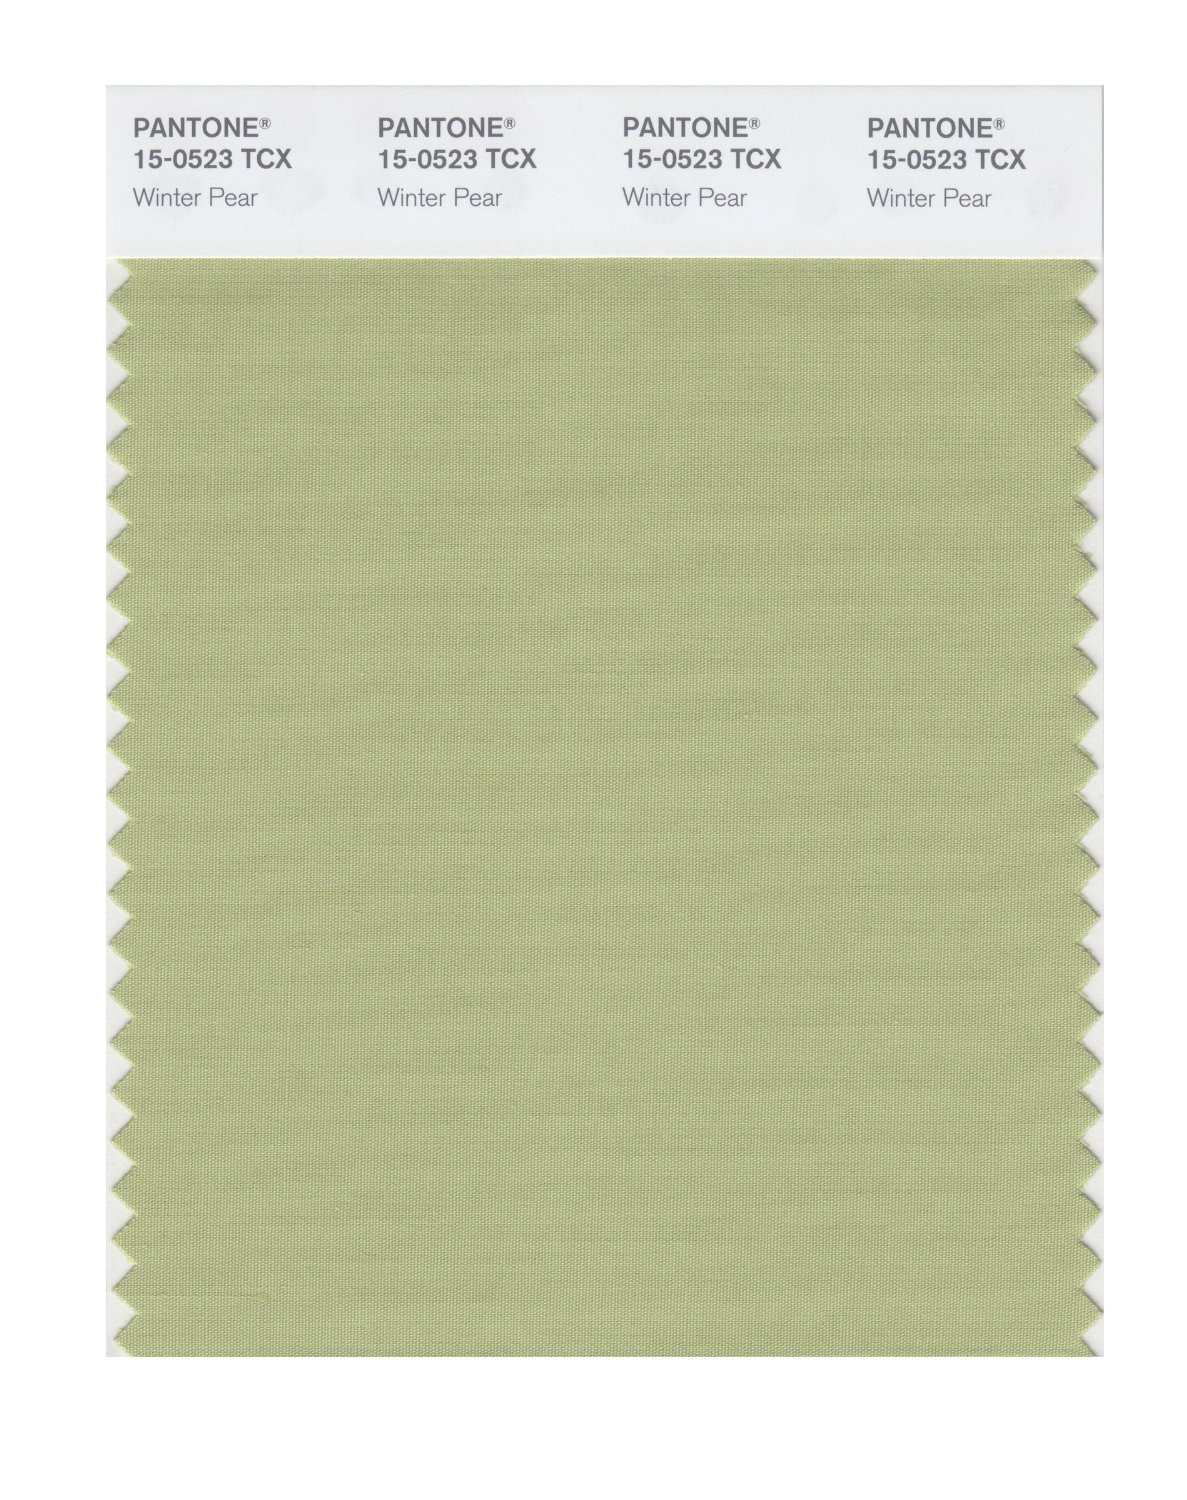 Pantone Smart Swatch 15-0523 Winter Pear